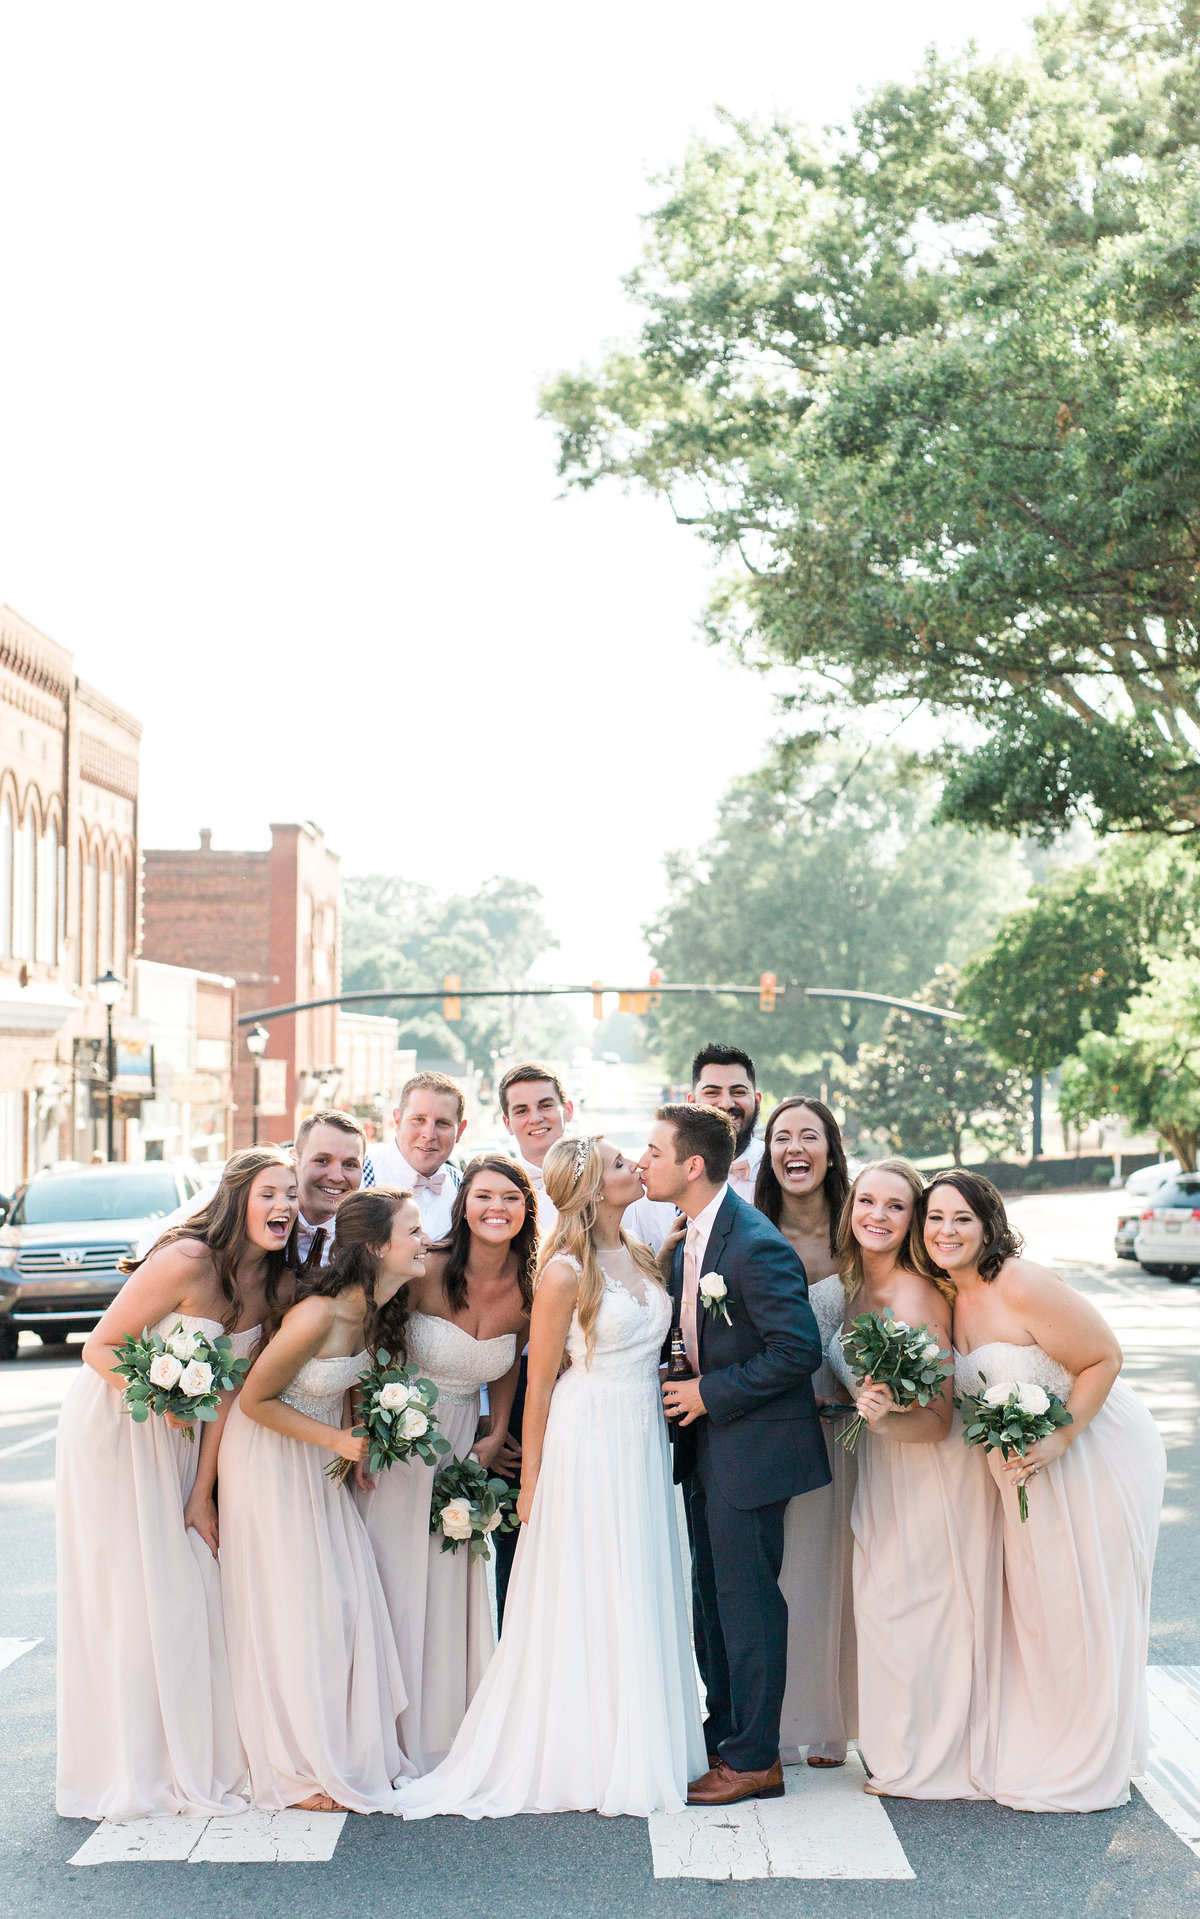 G_CandaceChristian_WD_BridalPartyPortraits-94